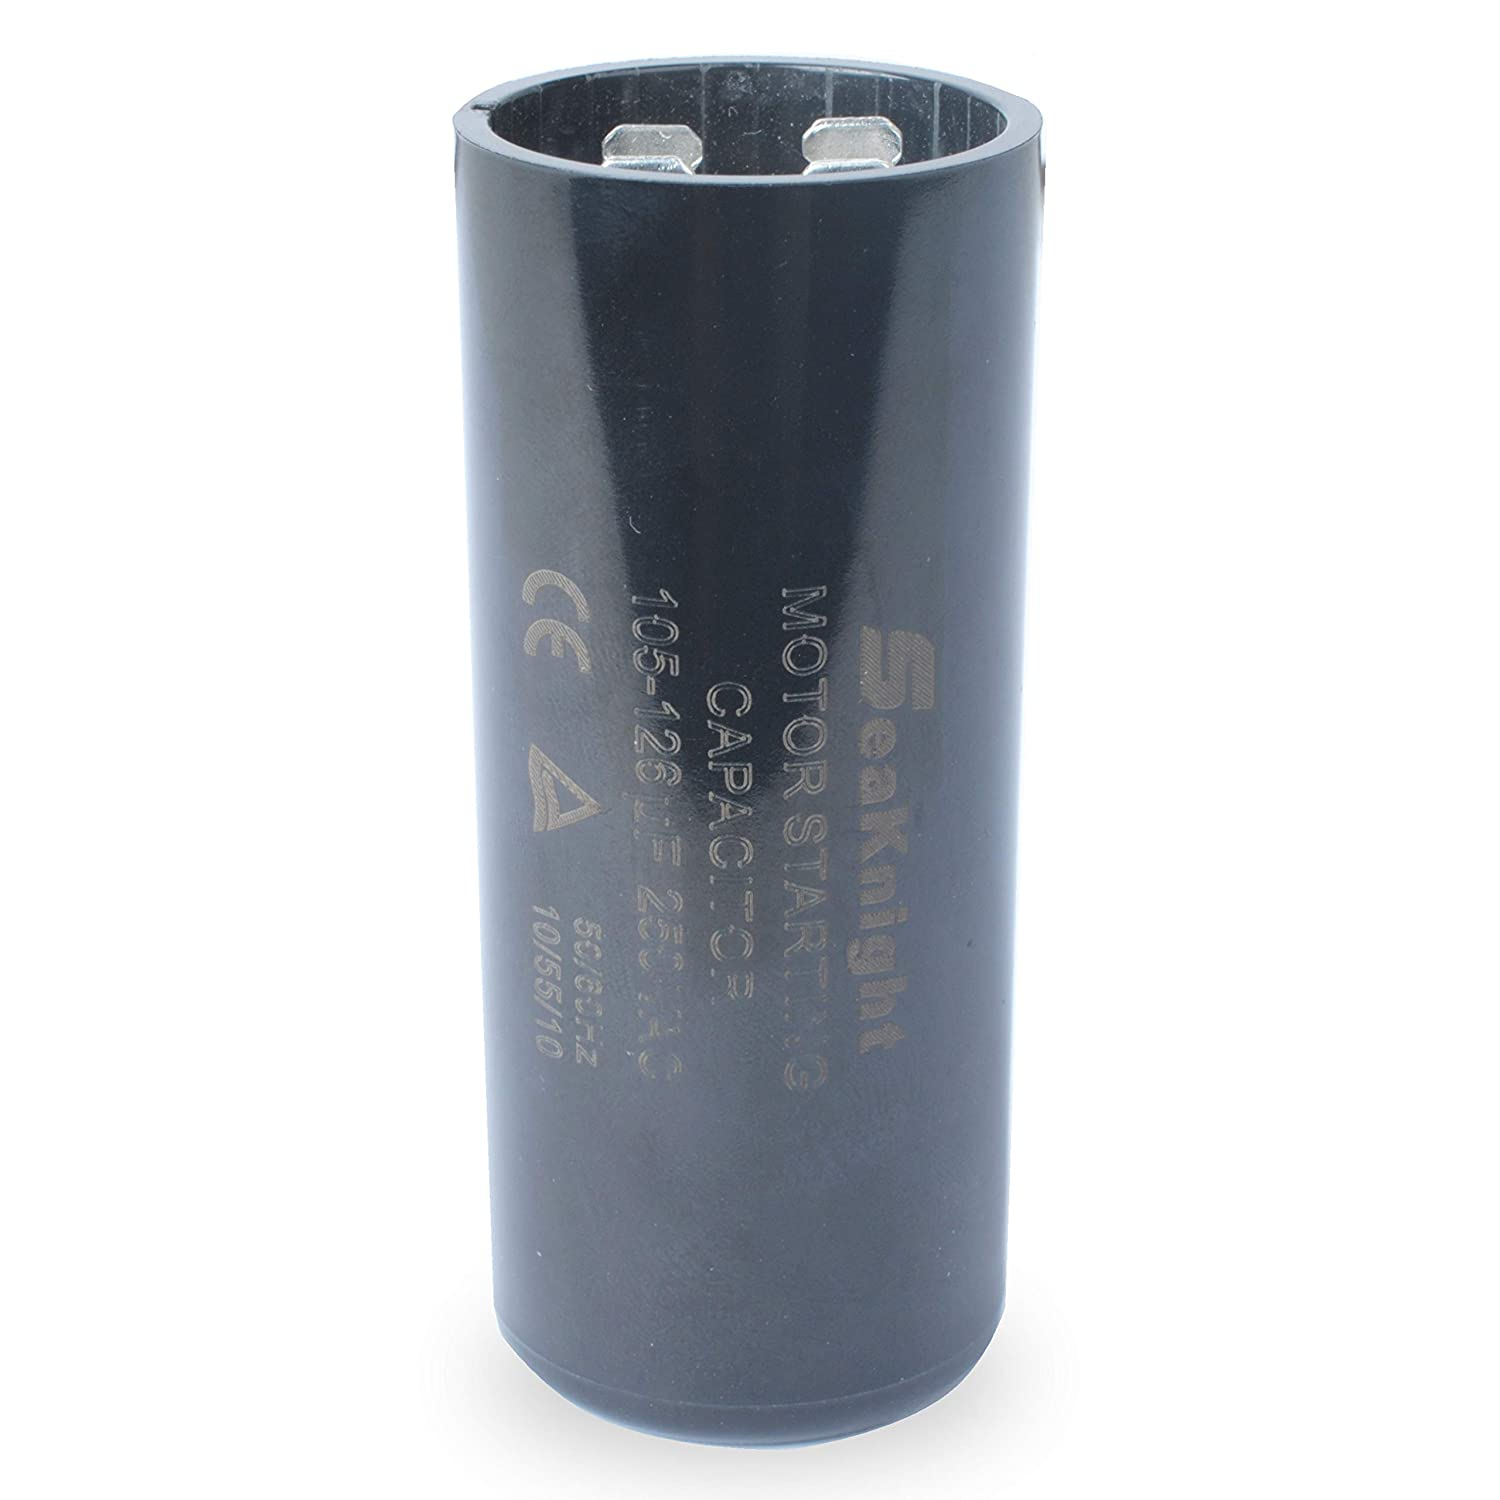 105-126 uf MFD Motor Start Capacitor 220-250VAC Replacement for Franklin 1HP, 1.5hp and 2HP Well Pump Control Box 2823008110, 2823018110, 2801084915, 2823018310, 2823508110